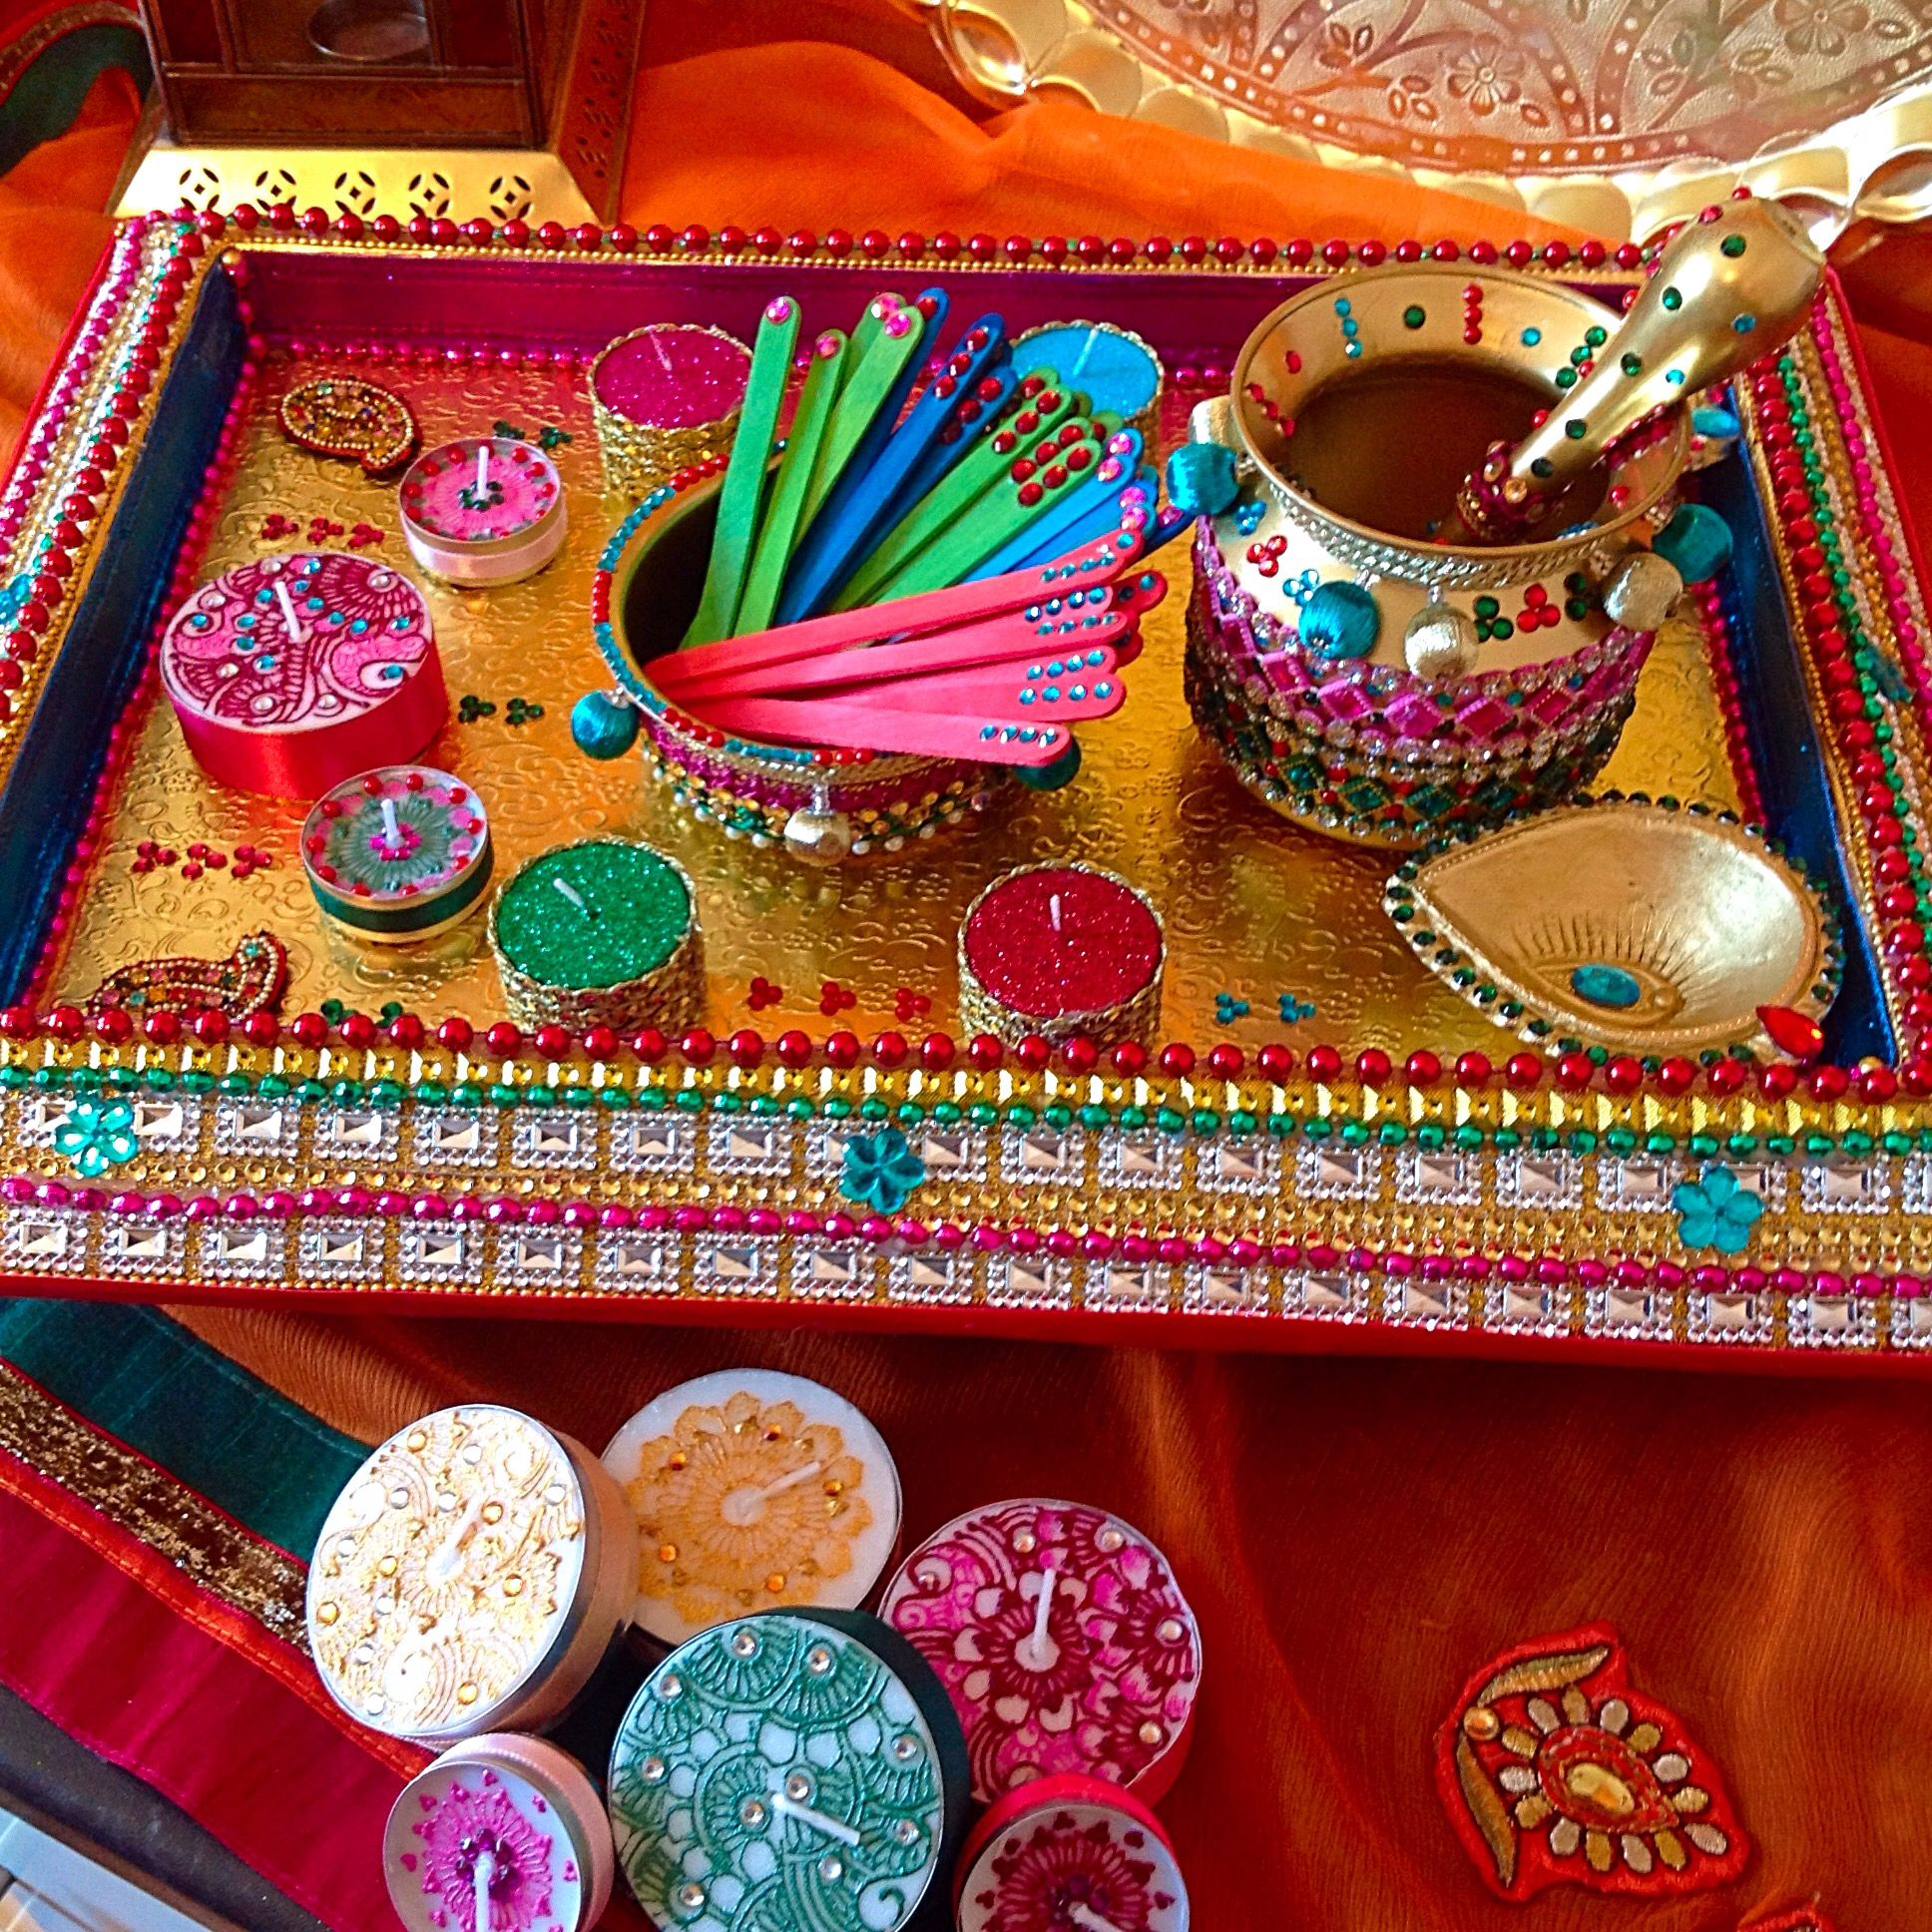 Indian Wedding Food Recipes: Large Rectangular Mehndi Plate, With Matching Oil And